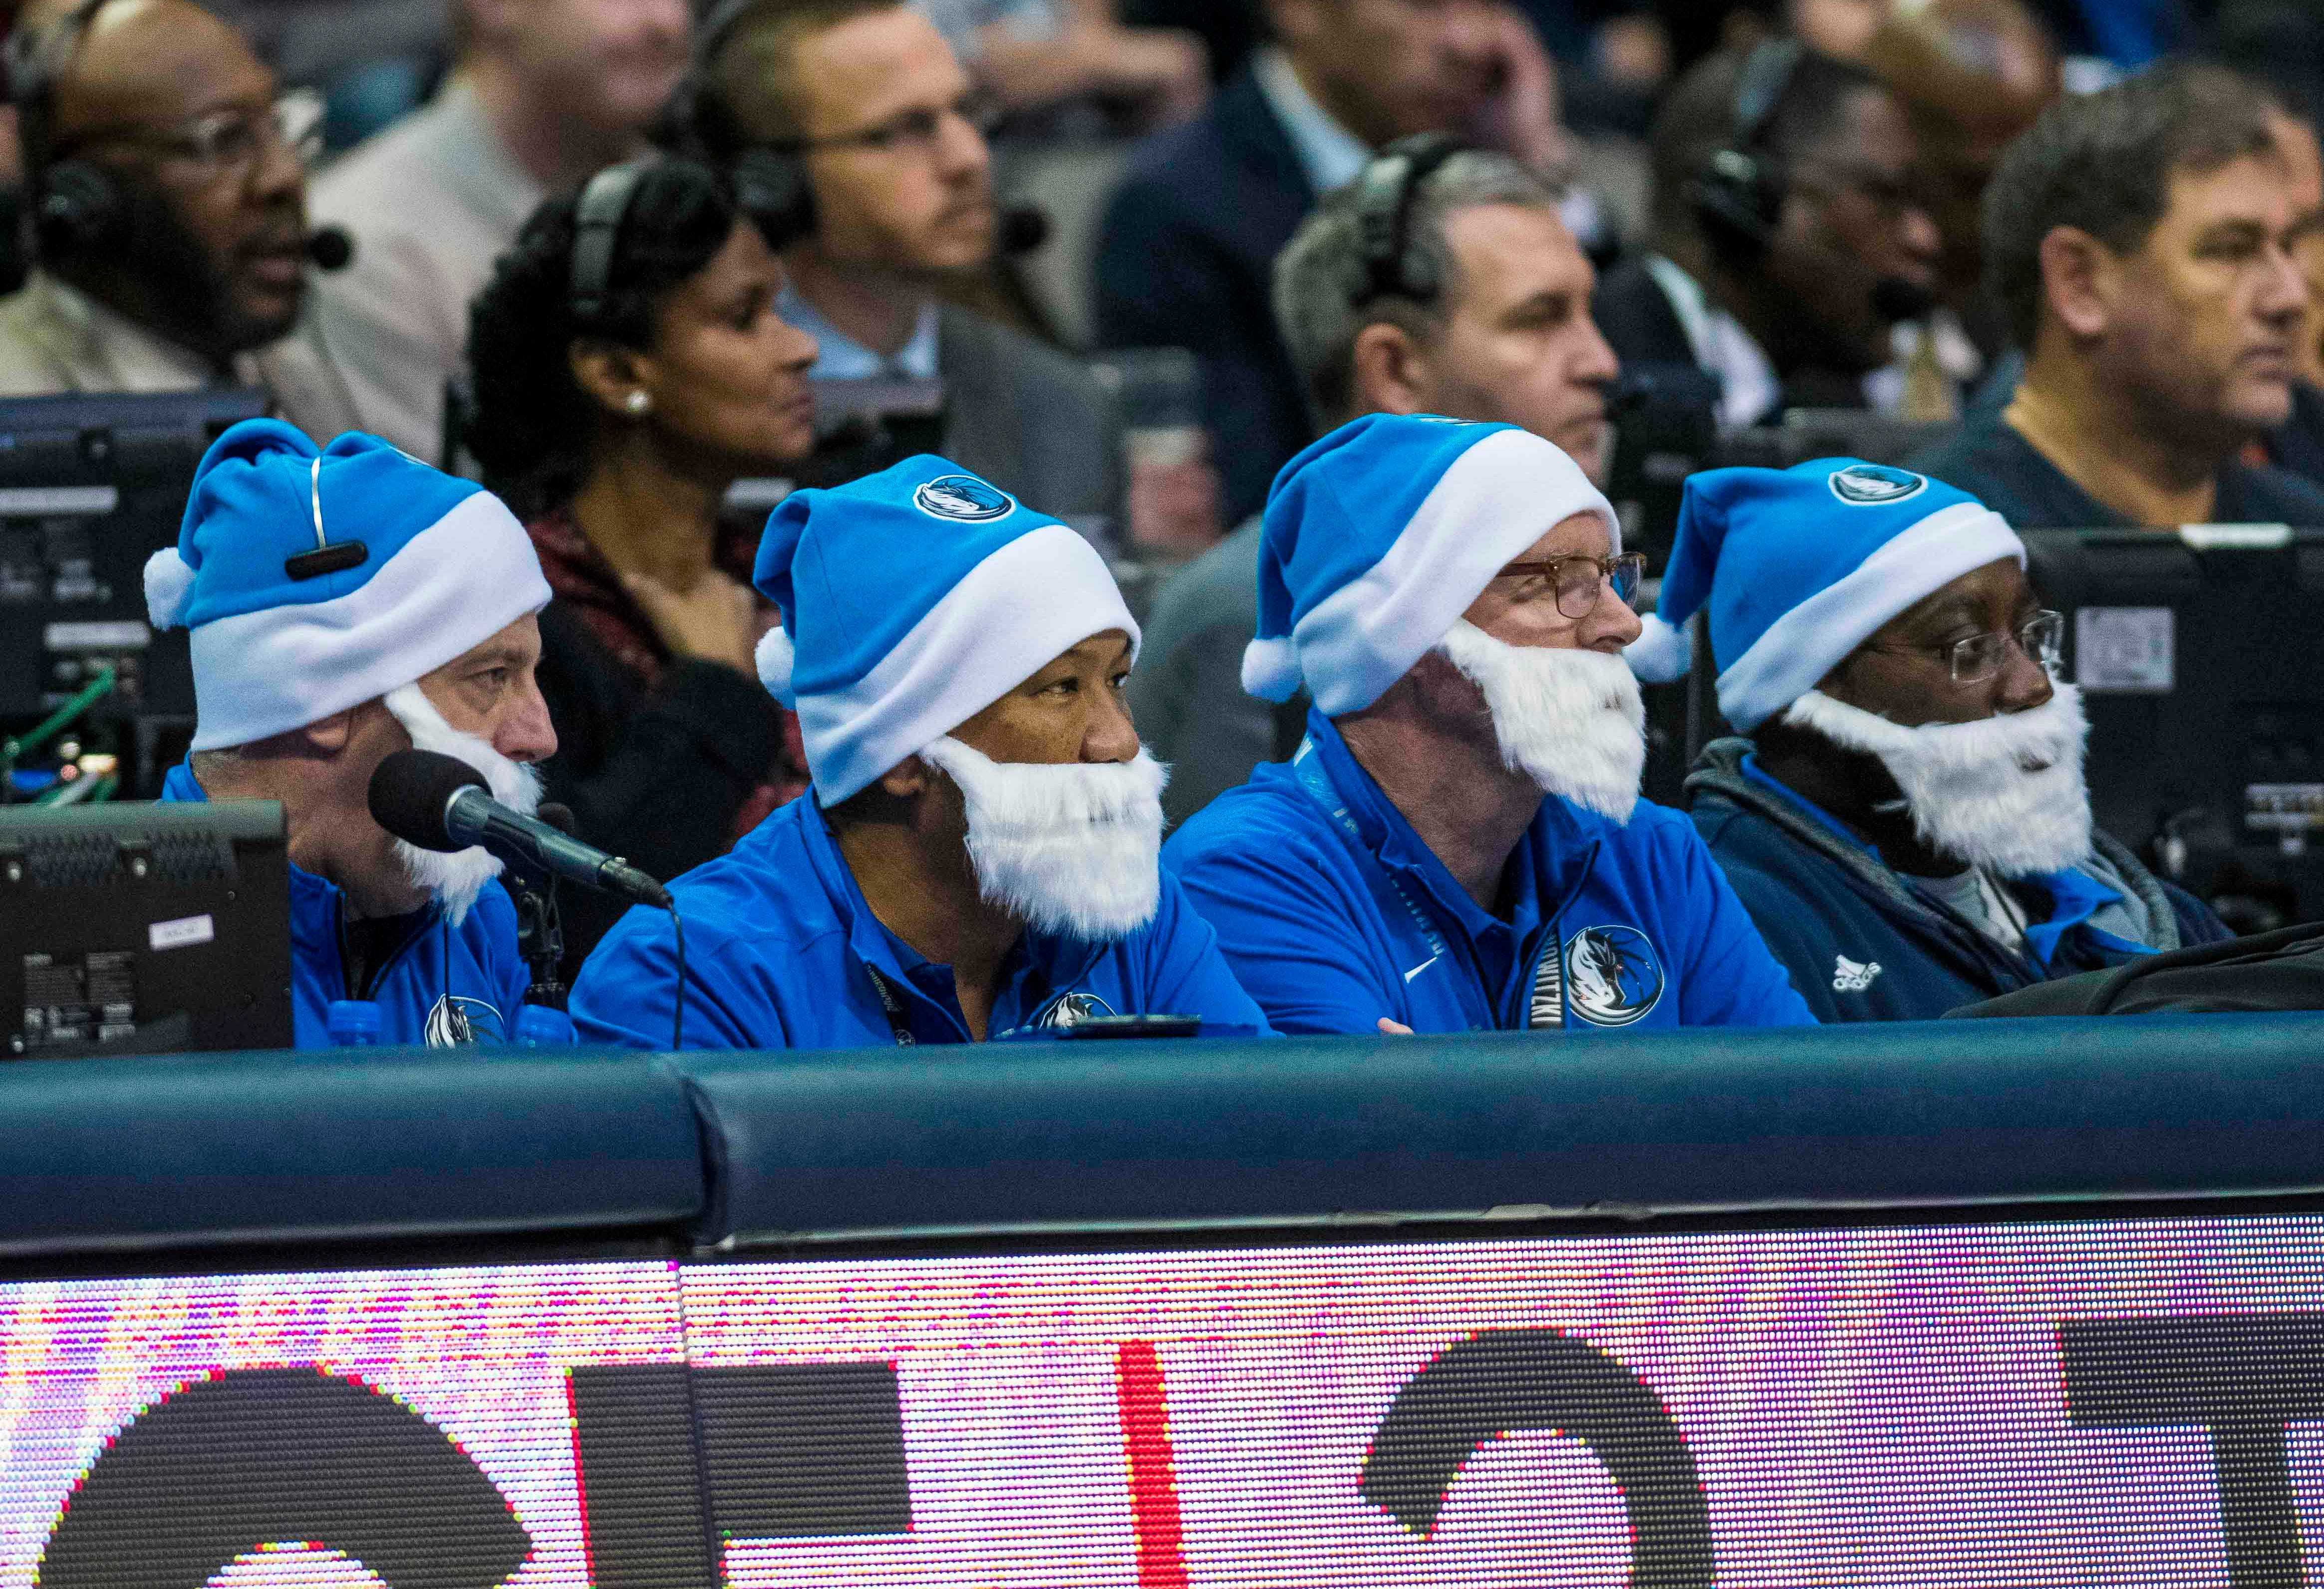 Dec. 12: Staff at the scorers' table sport some festive Mavericks-themed hats and beards.